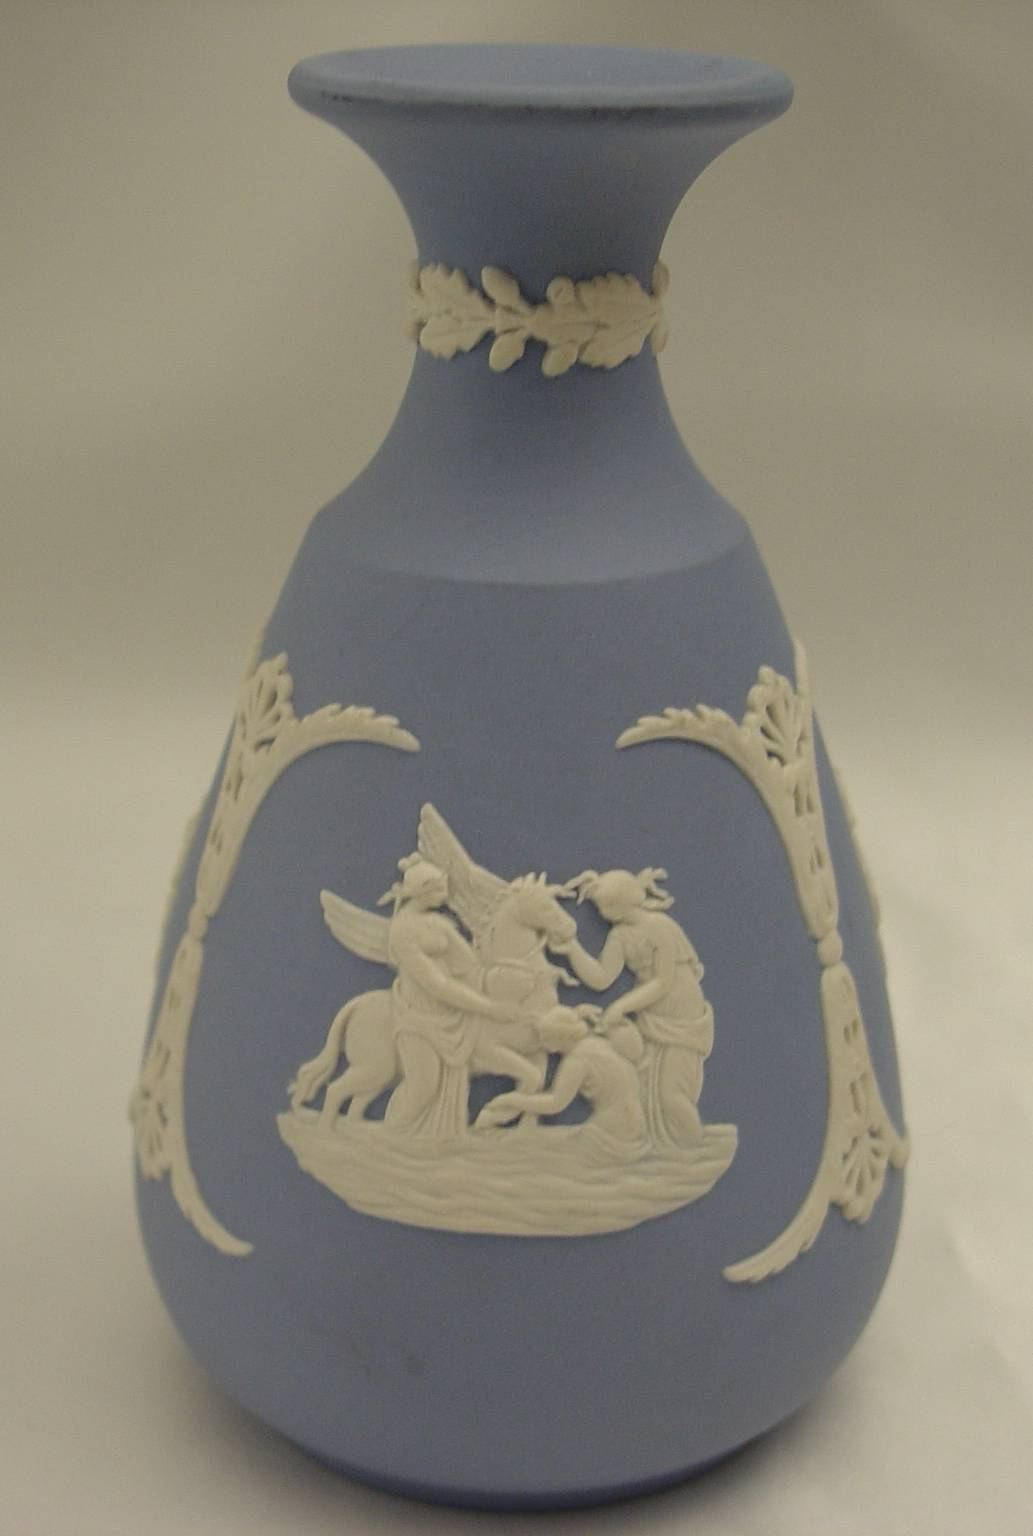 Wedgwood blue jasper bud vase wedgwood at imperfect perfection reviewsmspy